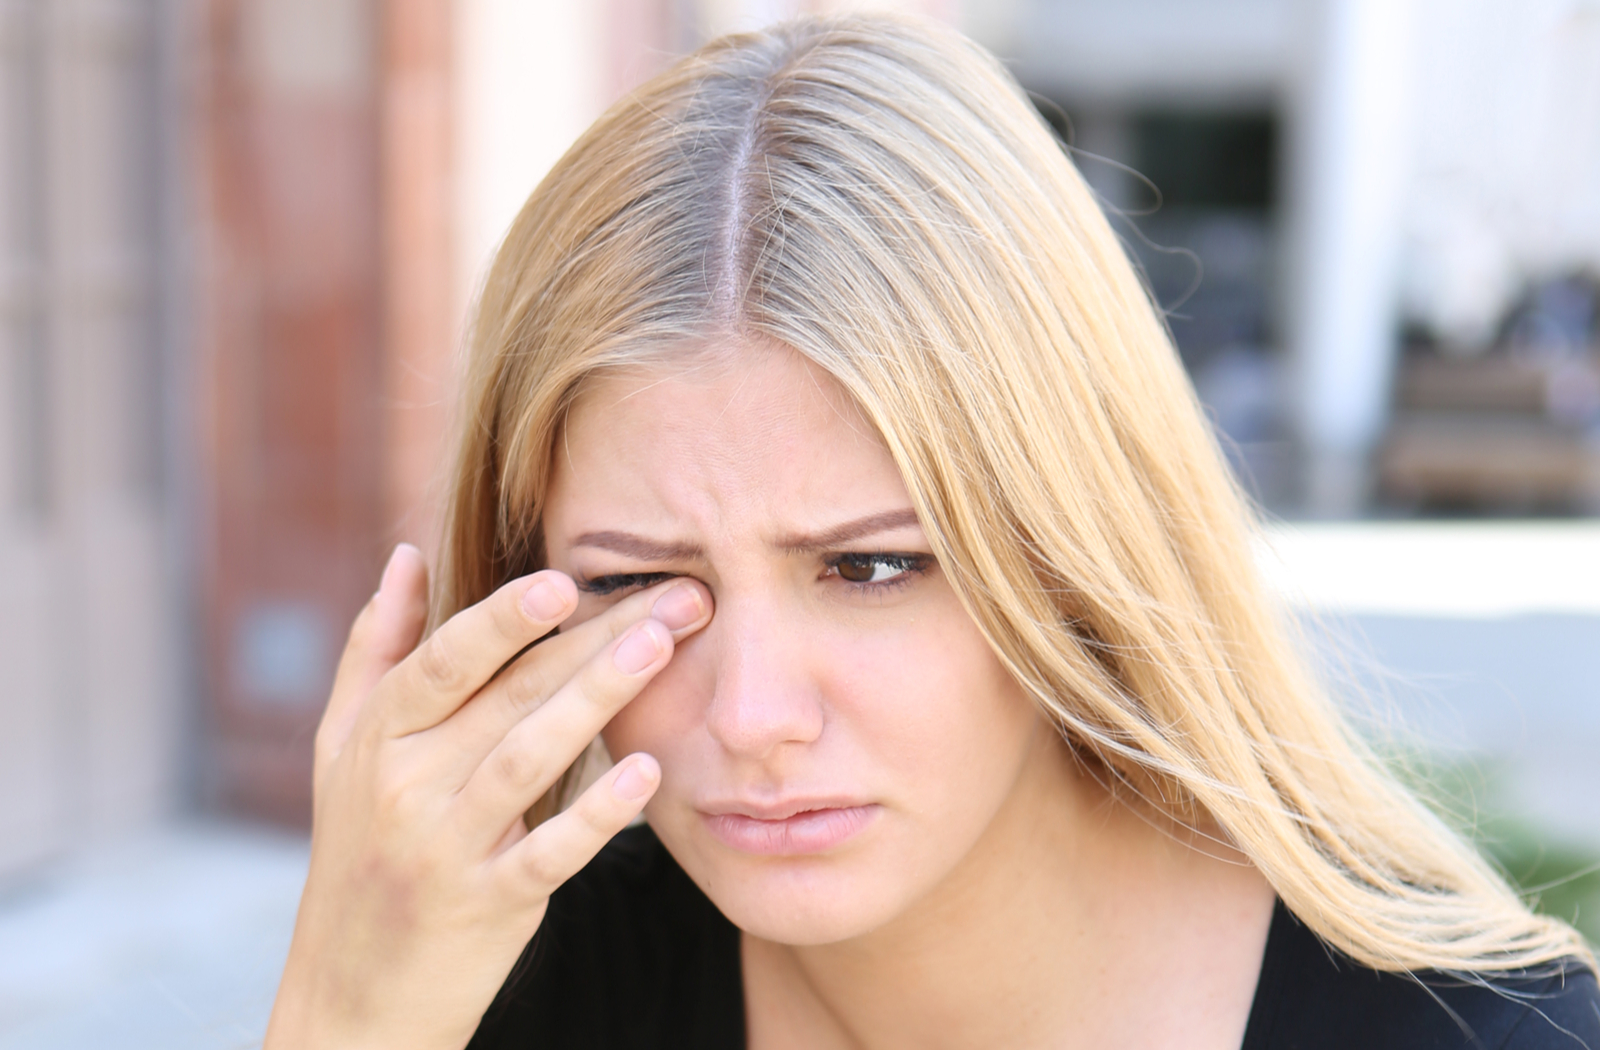 Young woman touching her right eye as she experiences discomfort